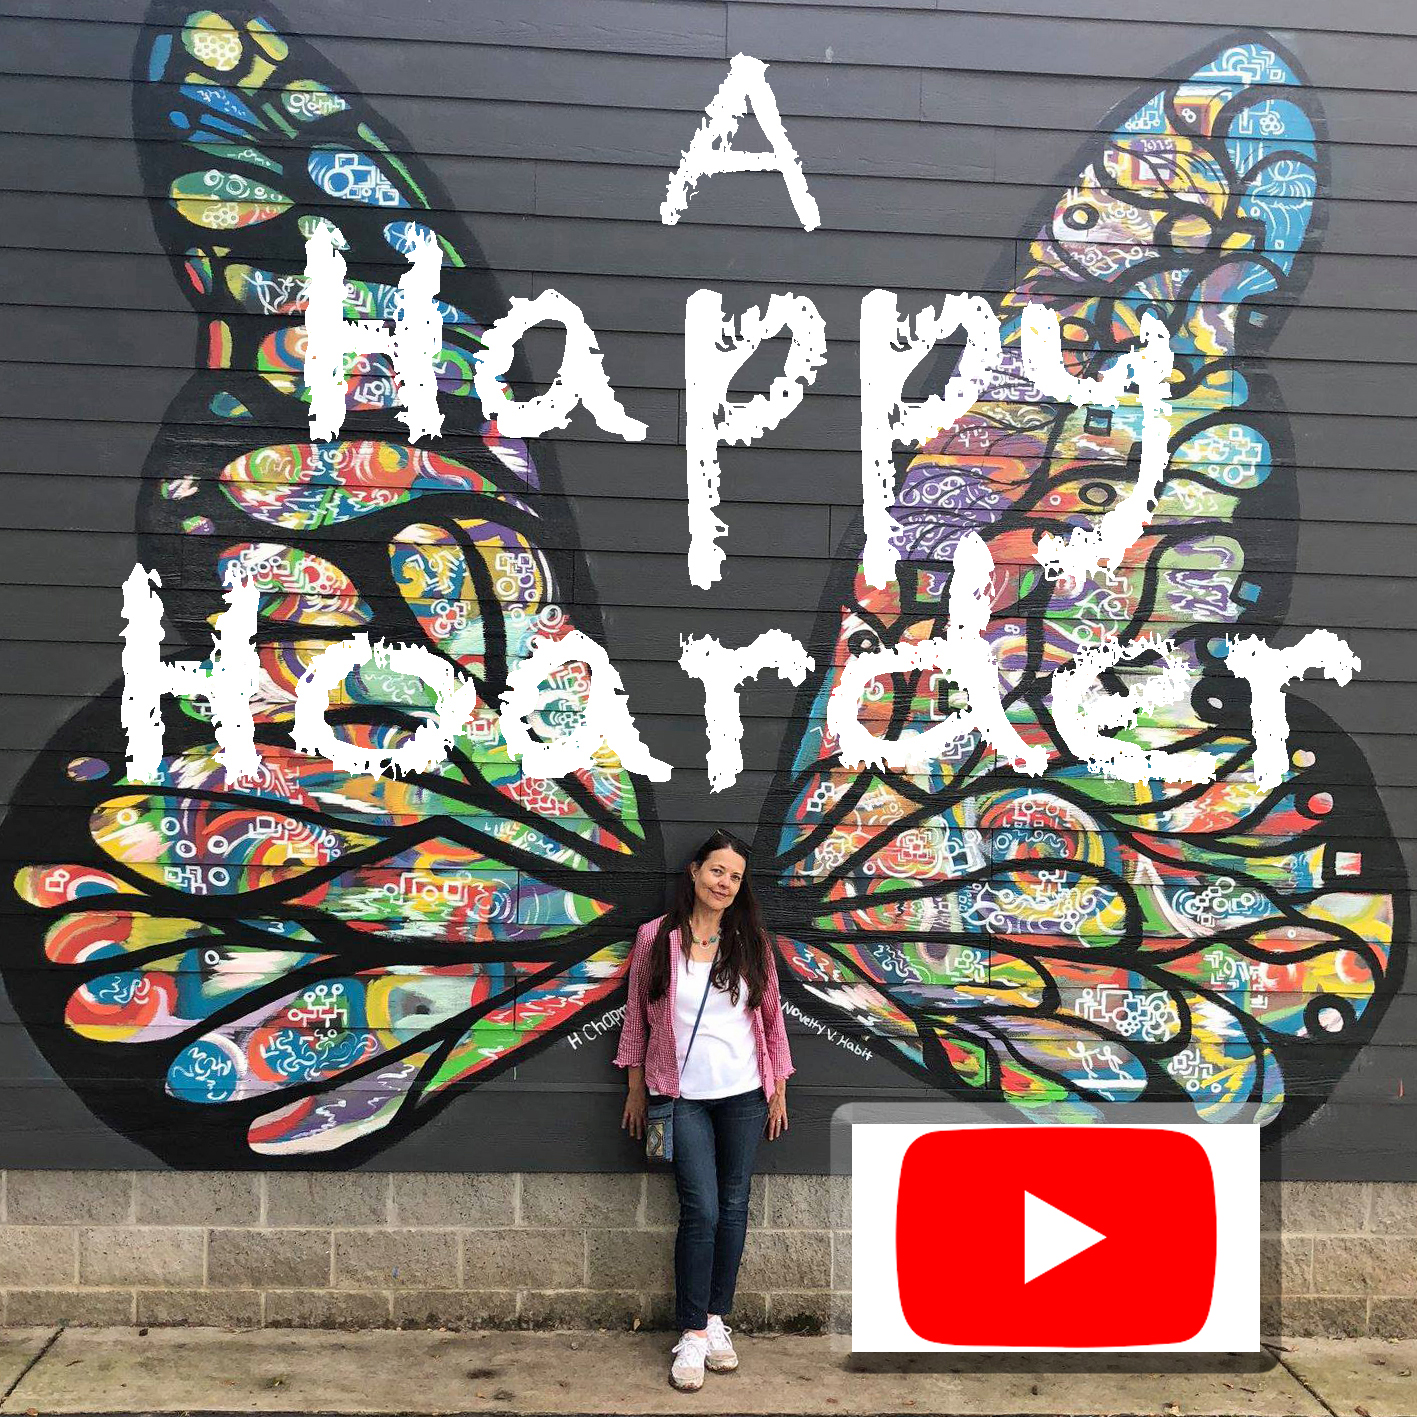 A Happy Hoarder on YouTube